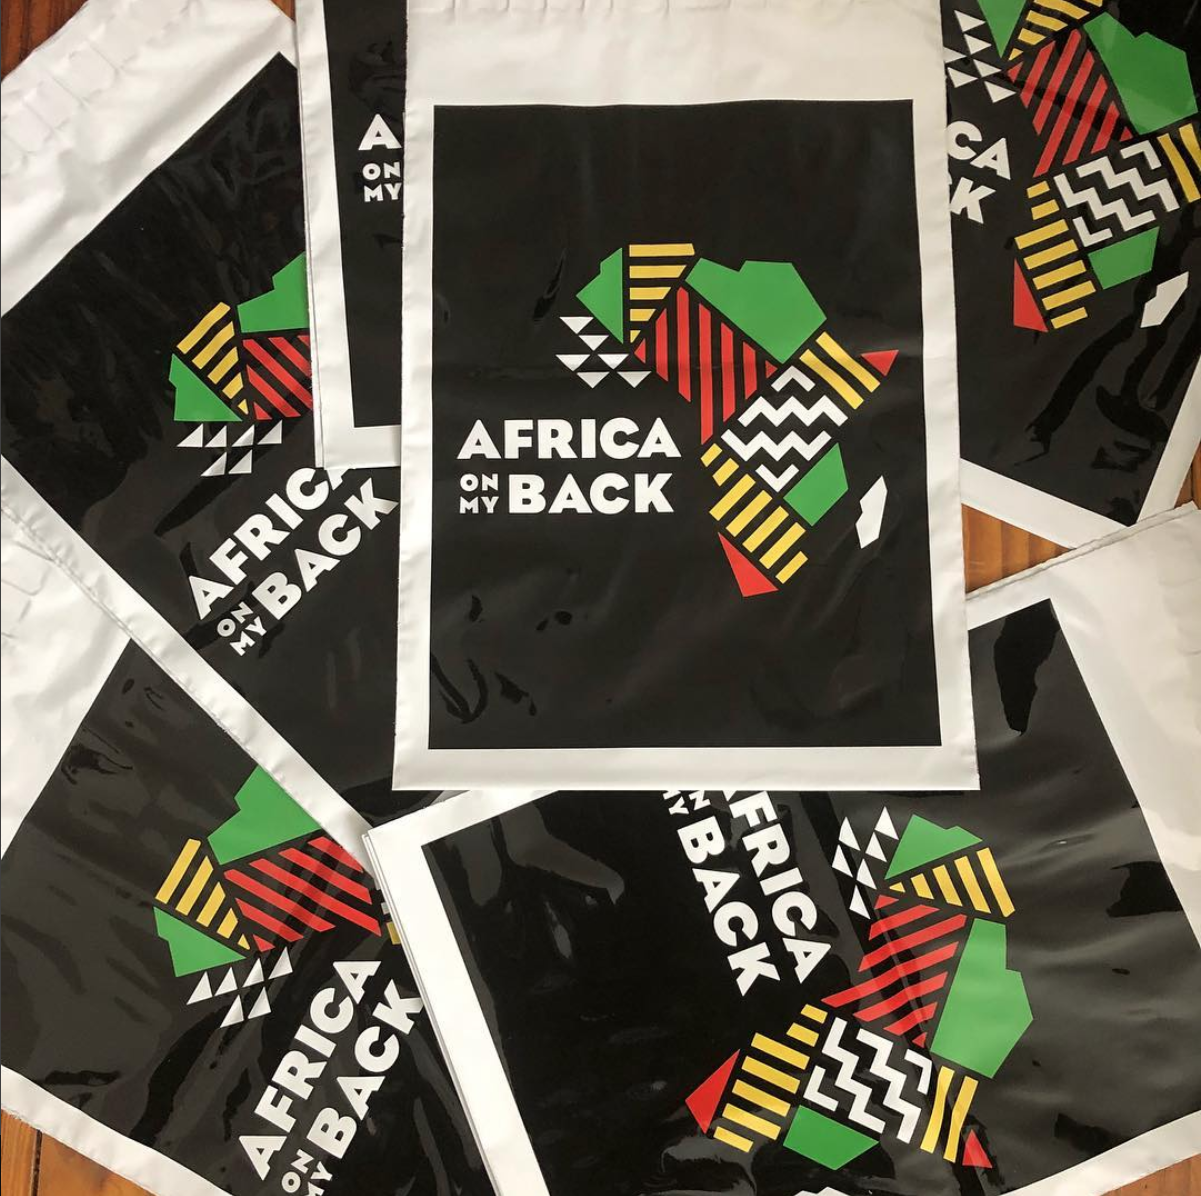 africa_on_my_back1